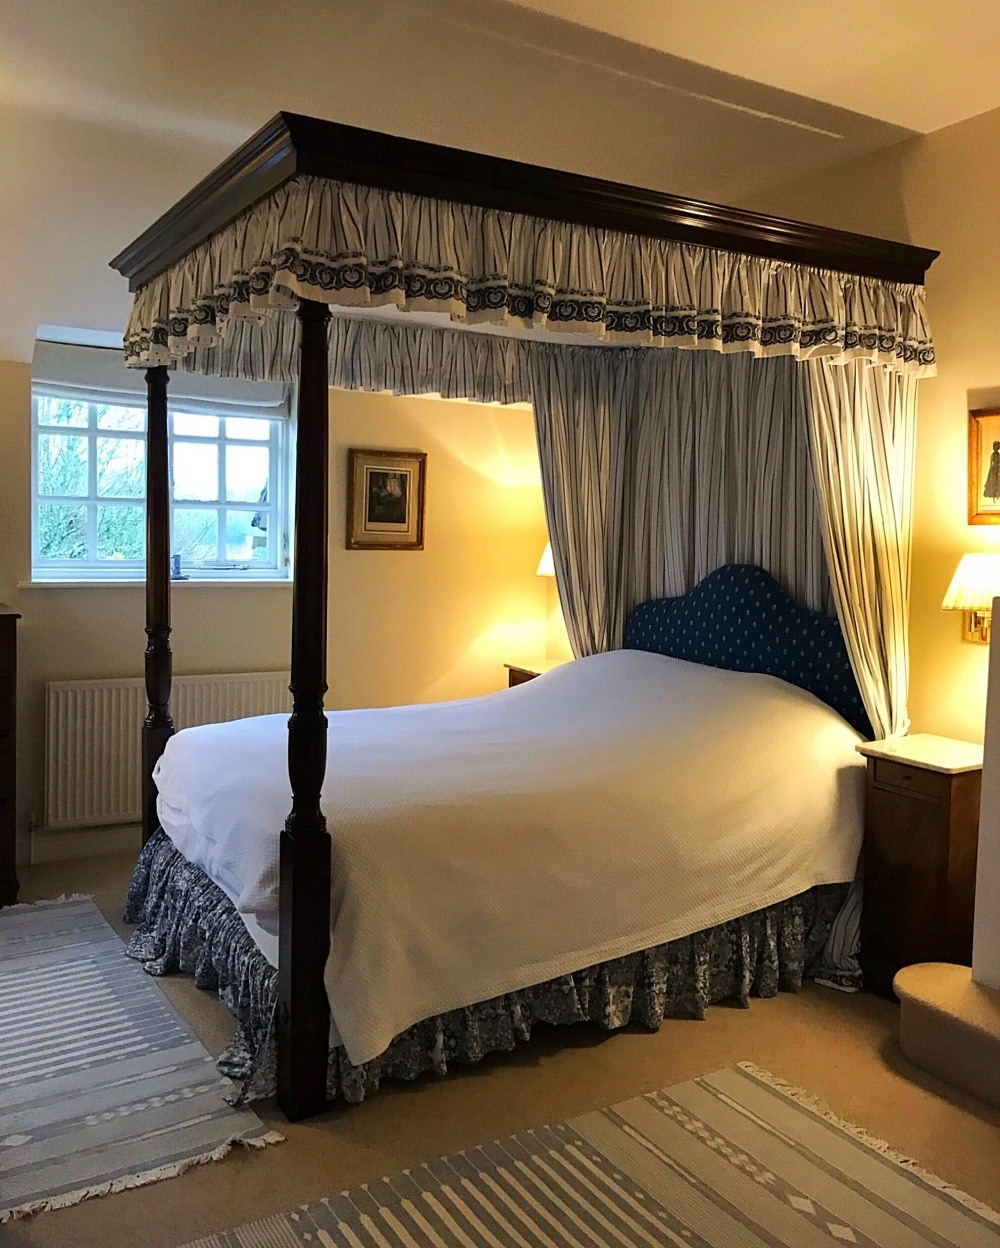 The four poster in our bedroom in Sandown - Bruern Cottages - Photo Heatheronhertravels.com